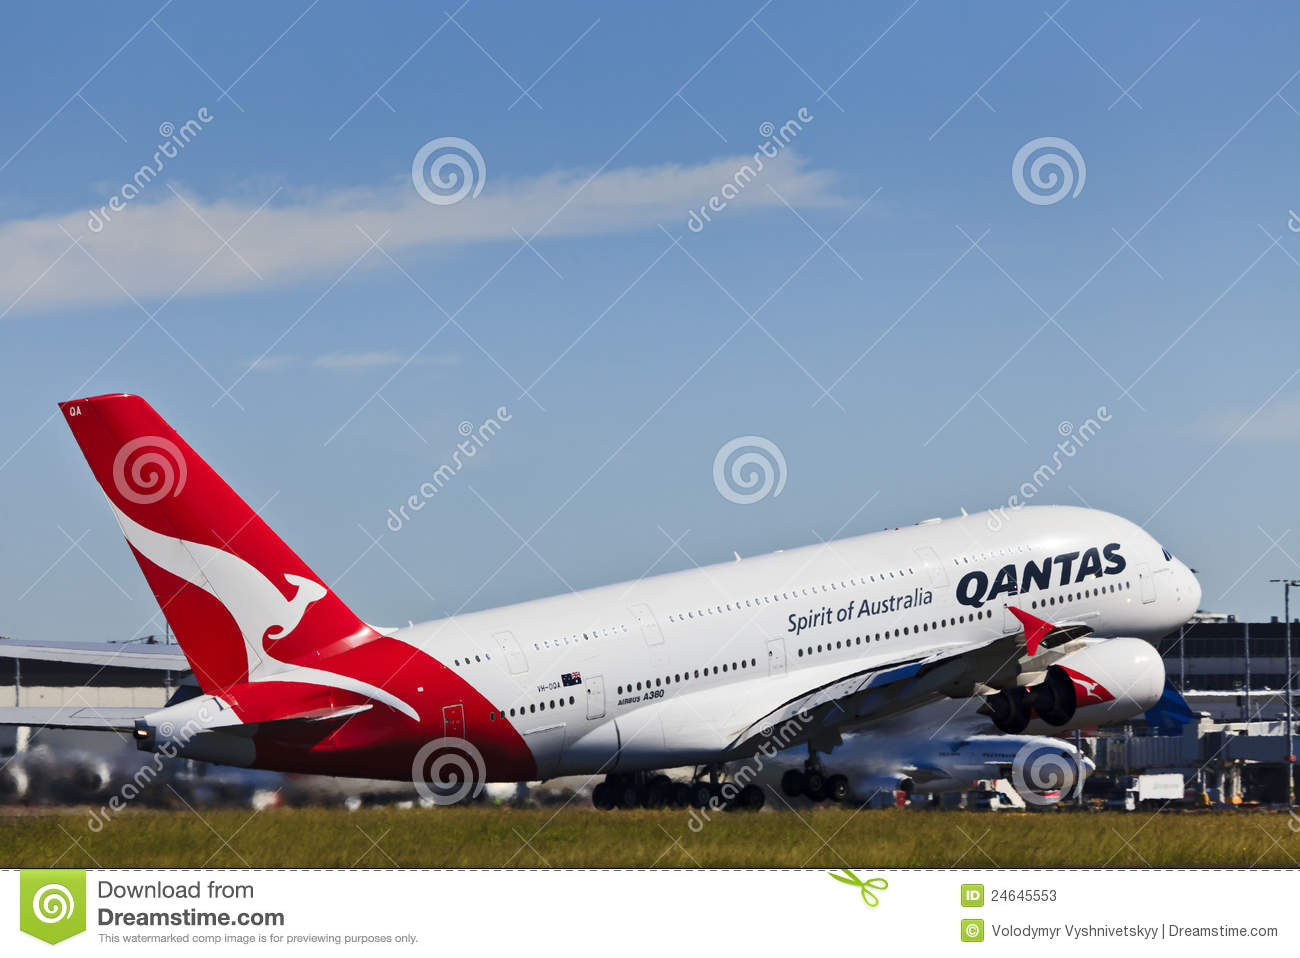 qantas airways limited essay Qantas airways, australia's #1 airline, flies to more than 200 destinations (including some served by code-sharing partners) in more than 45 countries (code-sharing enables carriers to sell tickets on one another's flights and thus extend their networks.